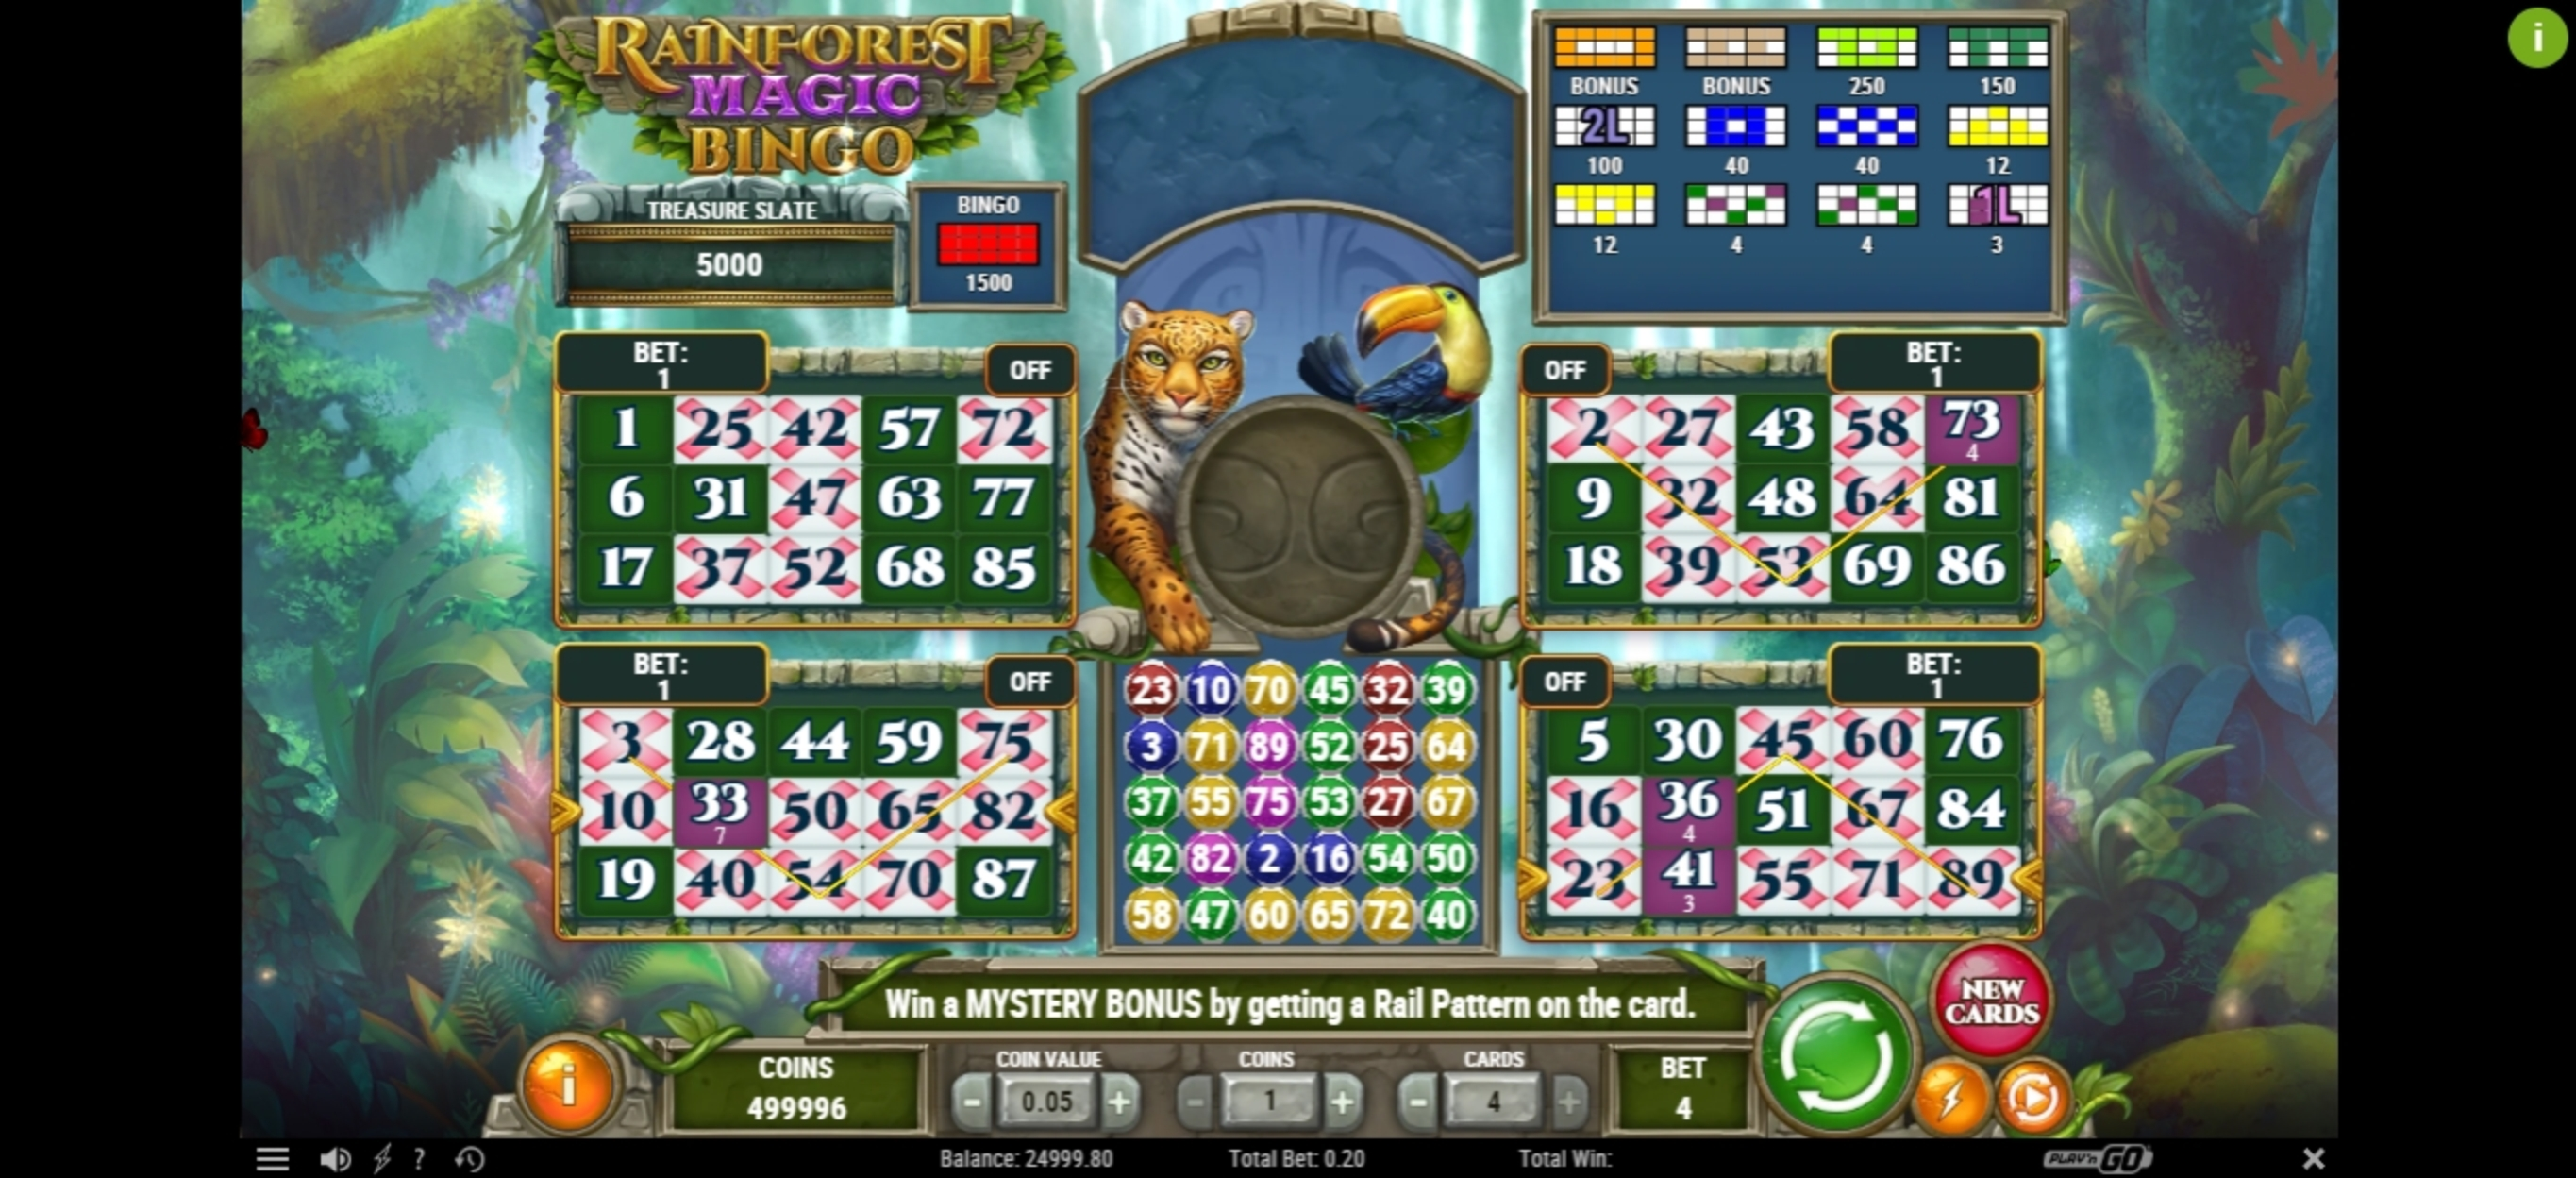 Win Money in Rainforest Magic Bingo Free Slot Game by Play'n Go